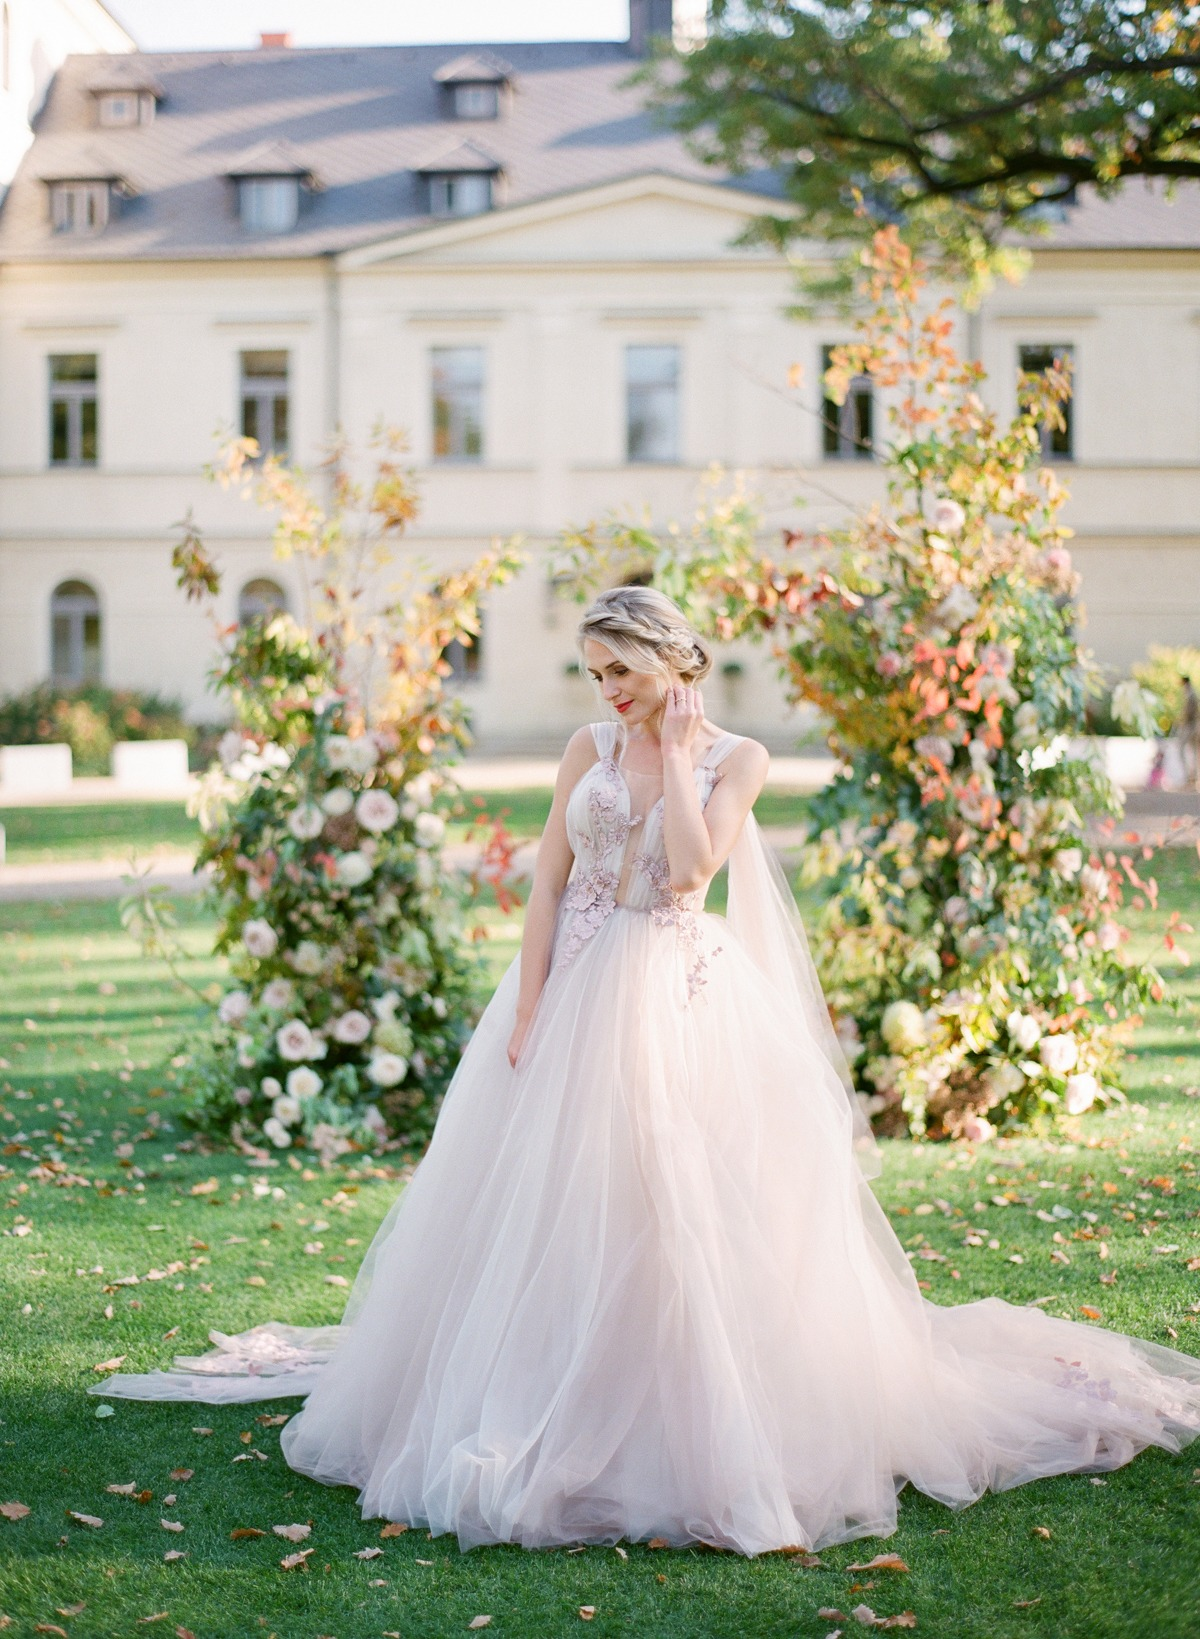 Blush tulle wedding dress by White Day